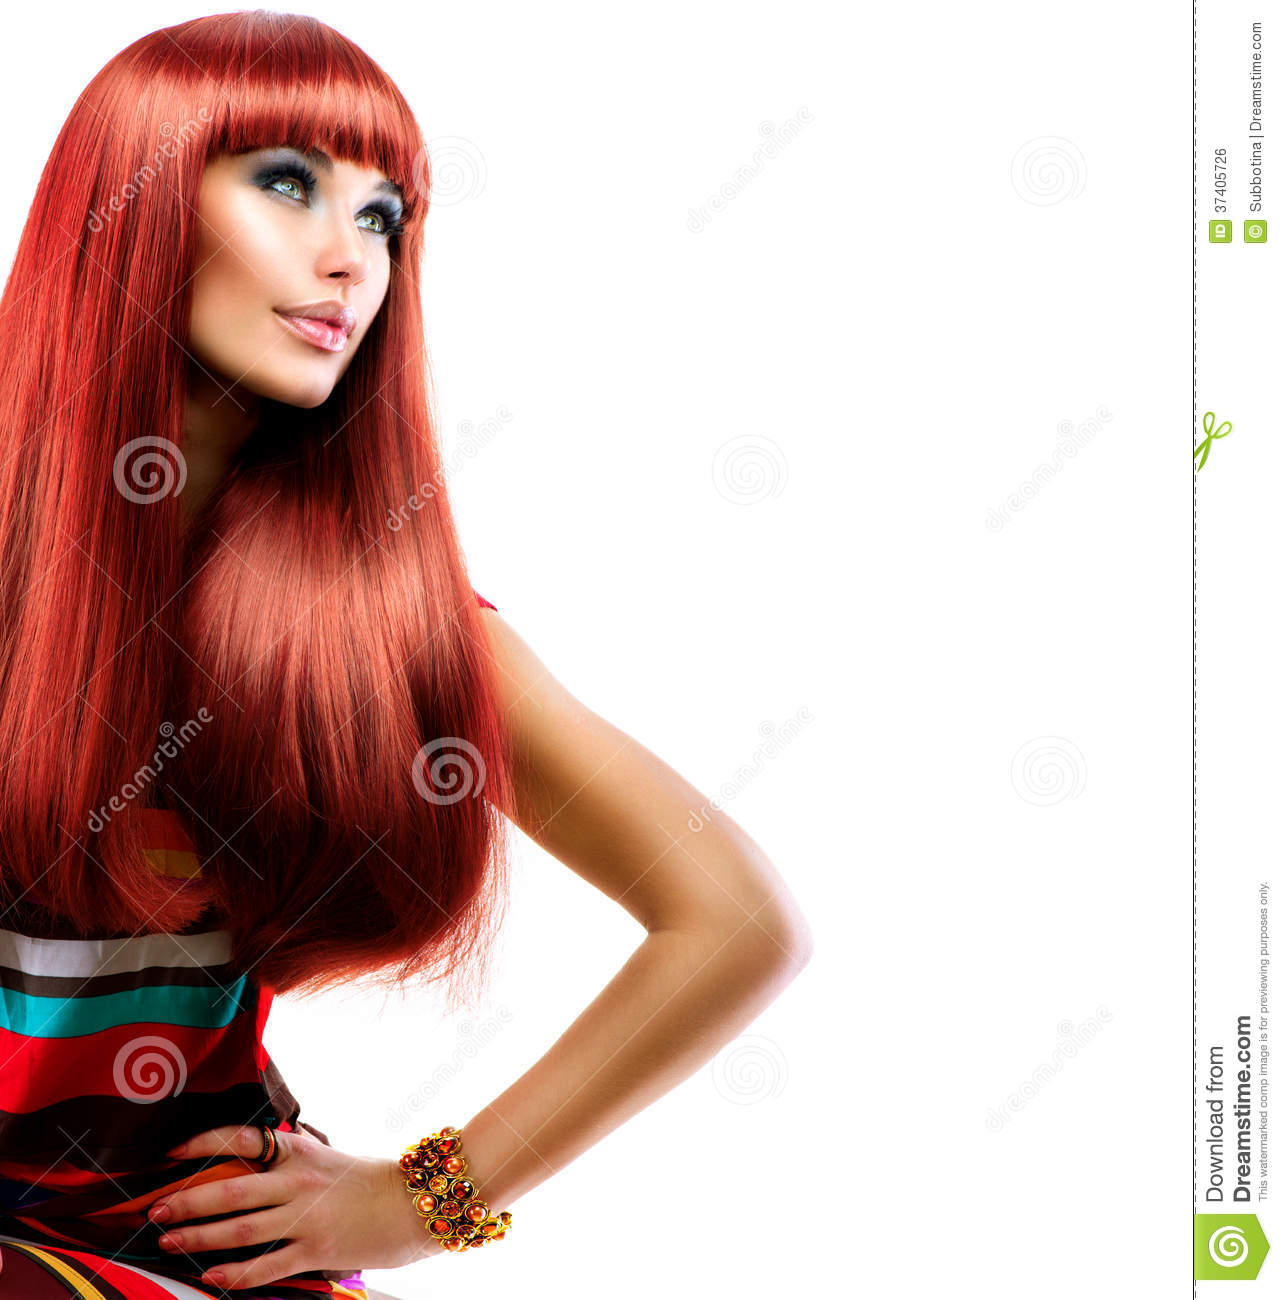 Girl With Long Red Hair Royalty Free Stock Image Image 37405726